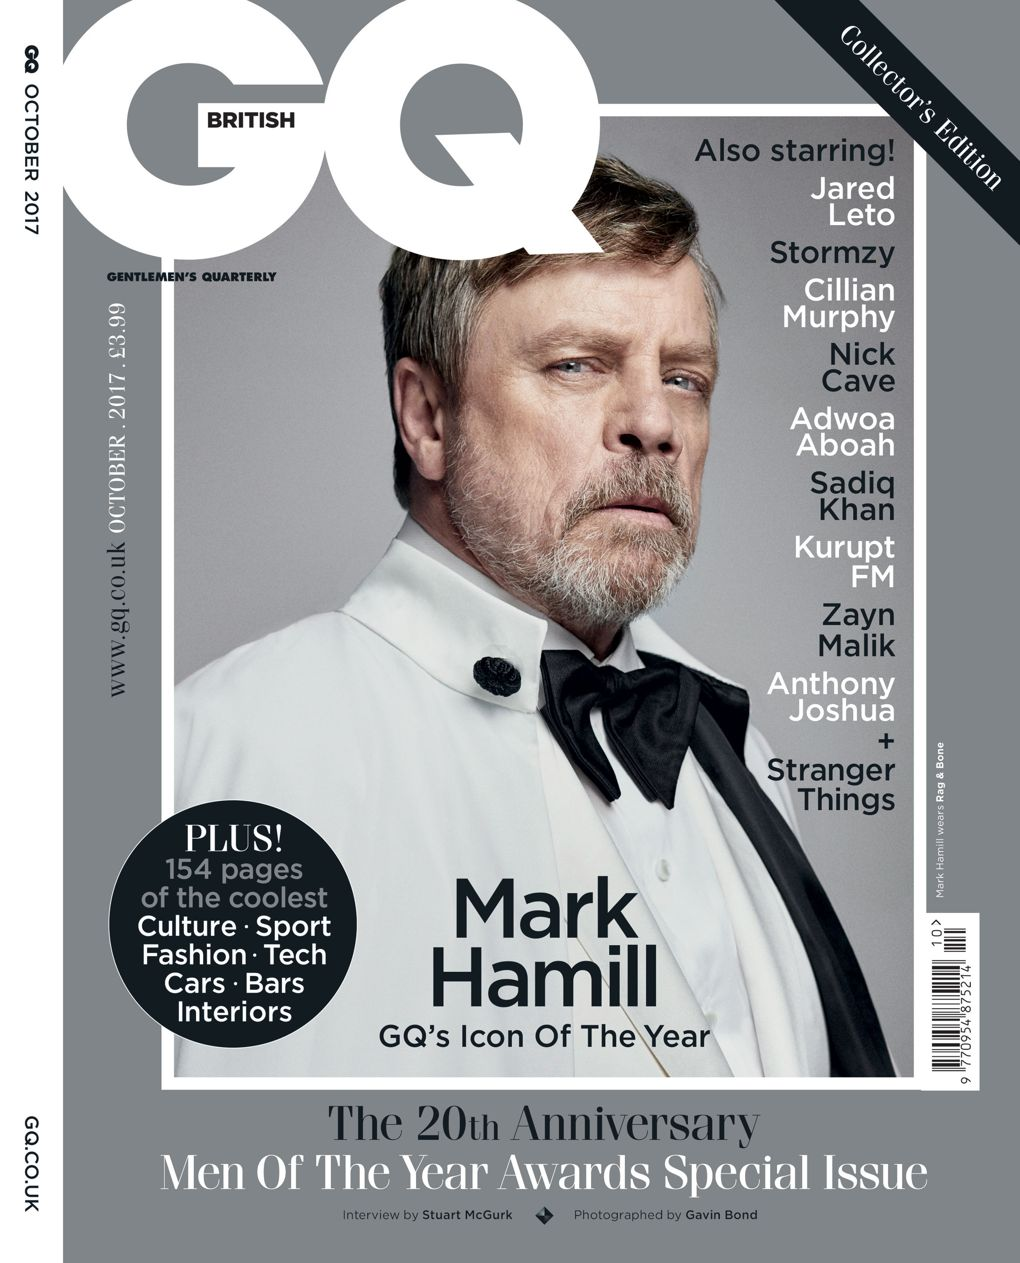 Mark Hamill on the cover of GQ Magazine